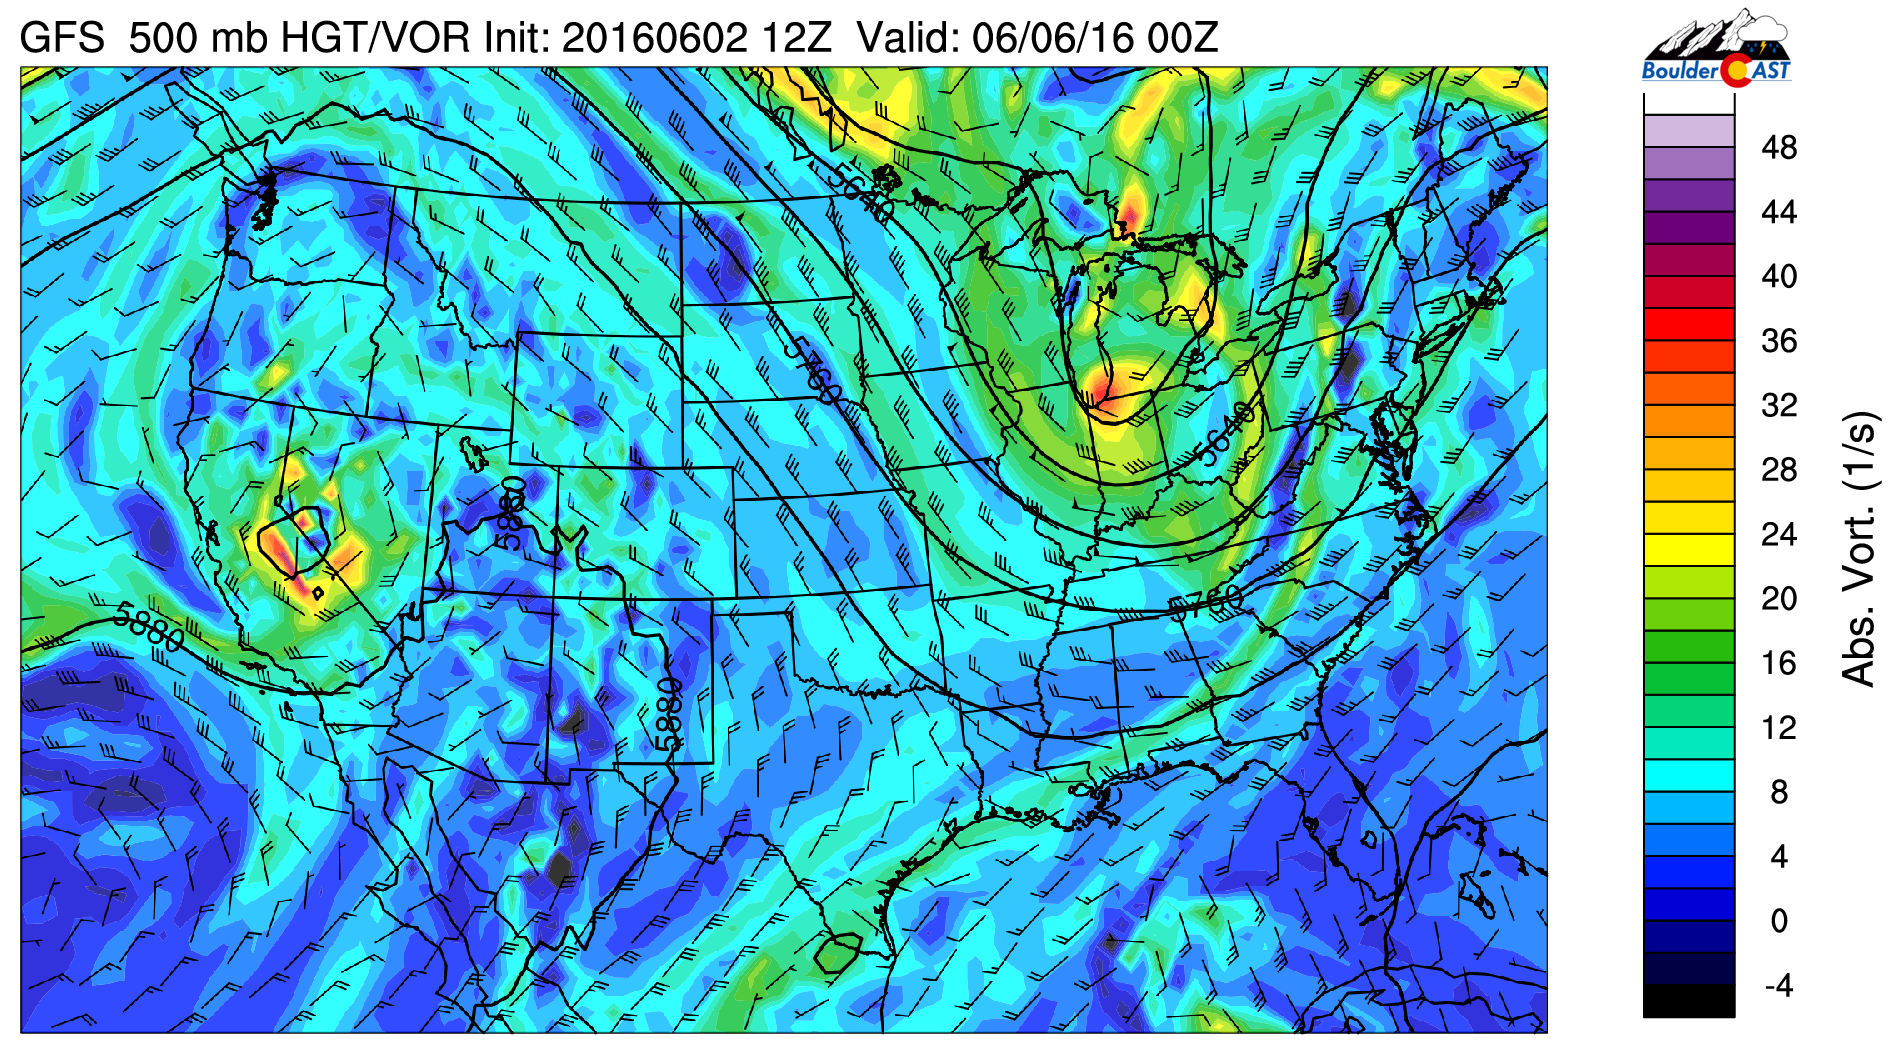 GFS 500 mb vorticity for Sunday night